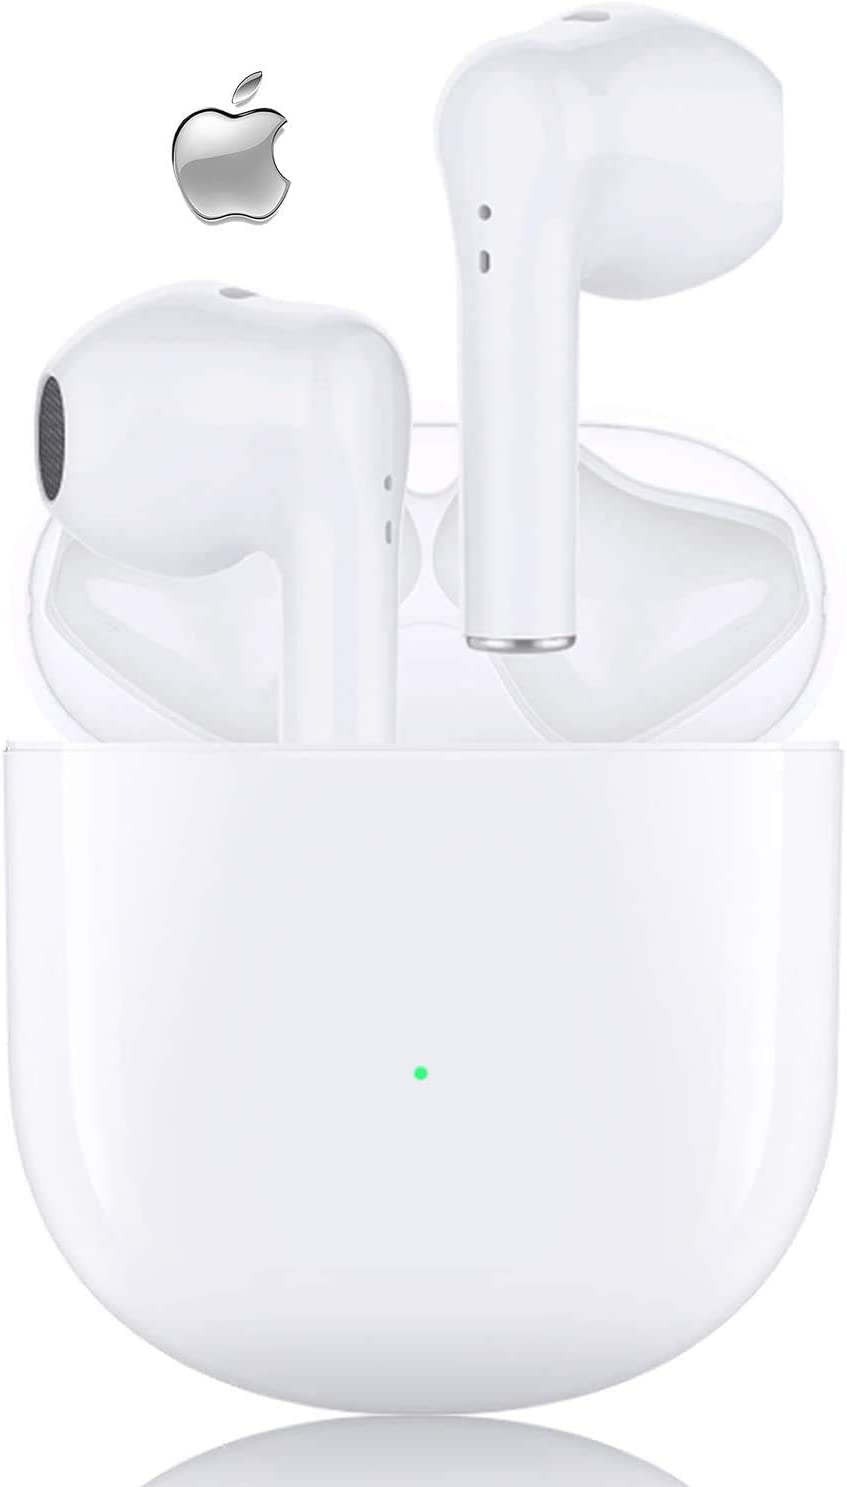 Wireless Earbuds Bluetooth 5.0 Headphones 3D Stereo Headphones with Fast Charging Case.Auto Pairing in-Ear Earbuds .for Apple of Airpods iPhone Android Sport Earbuds